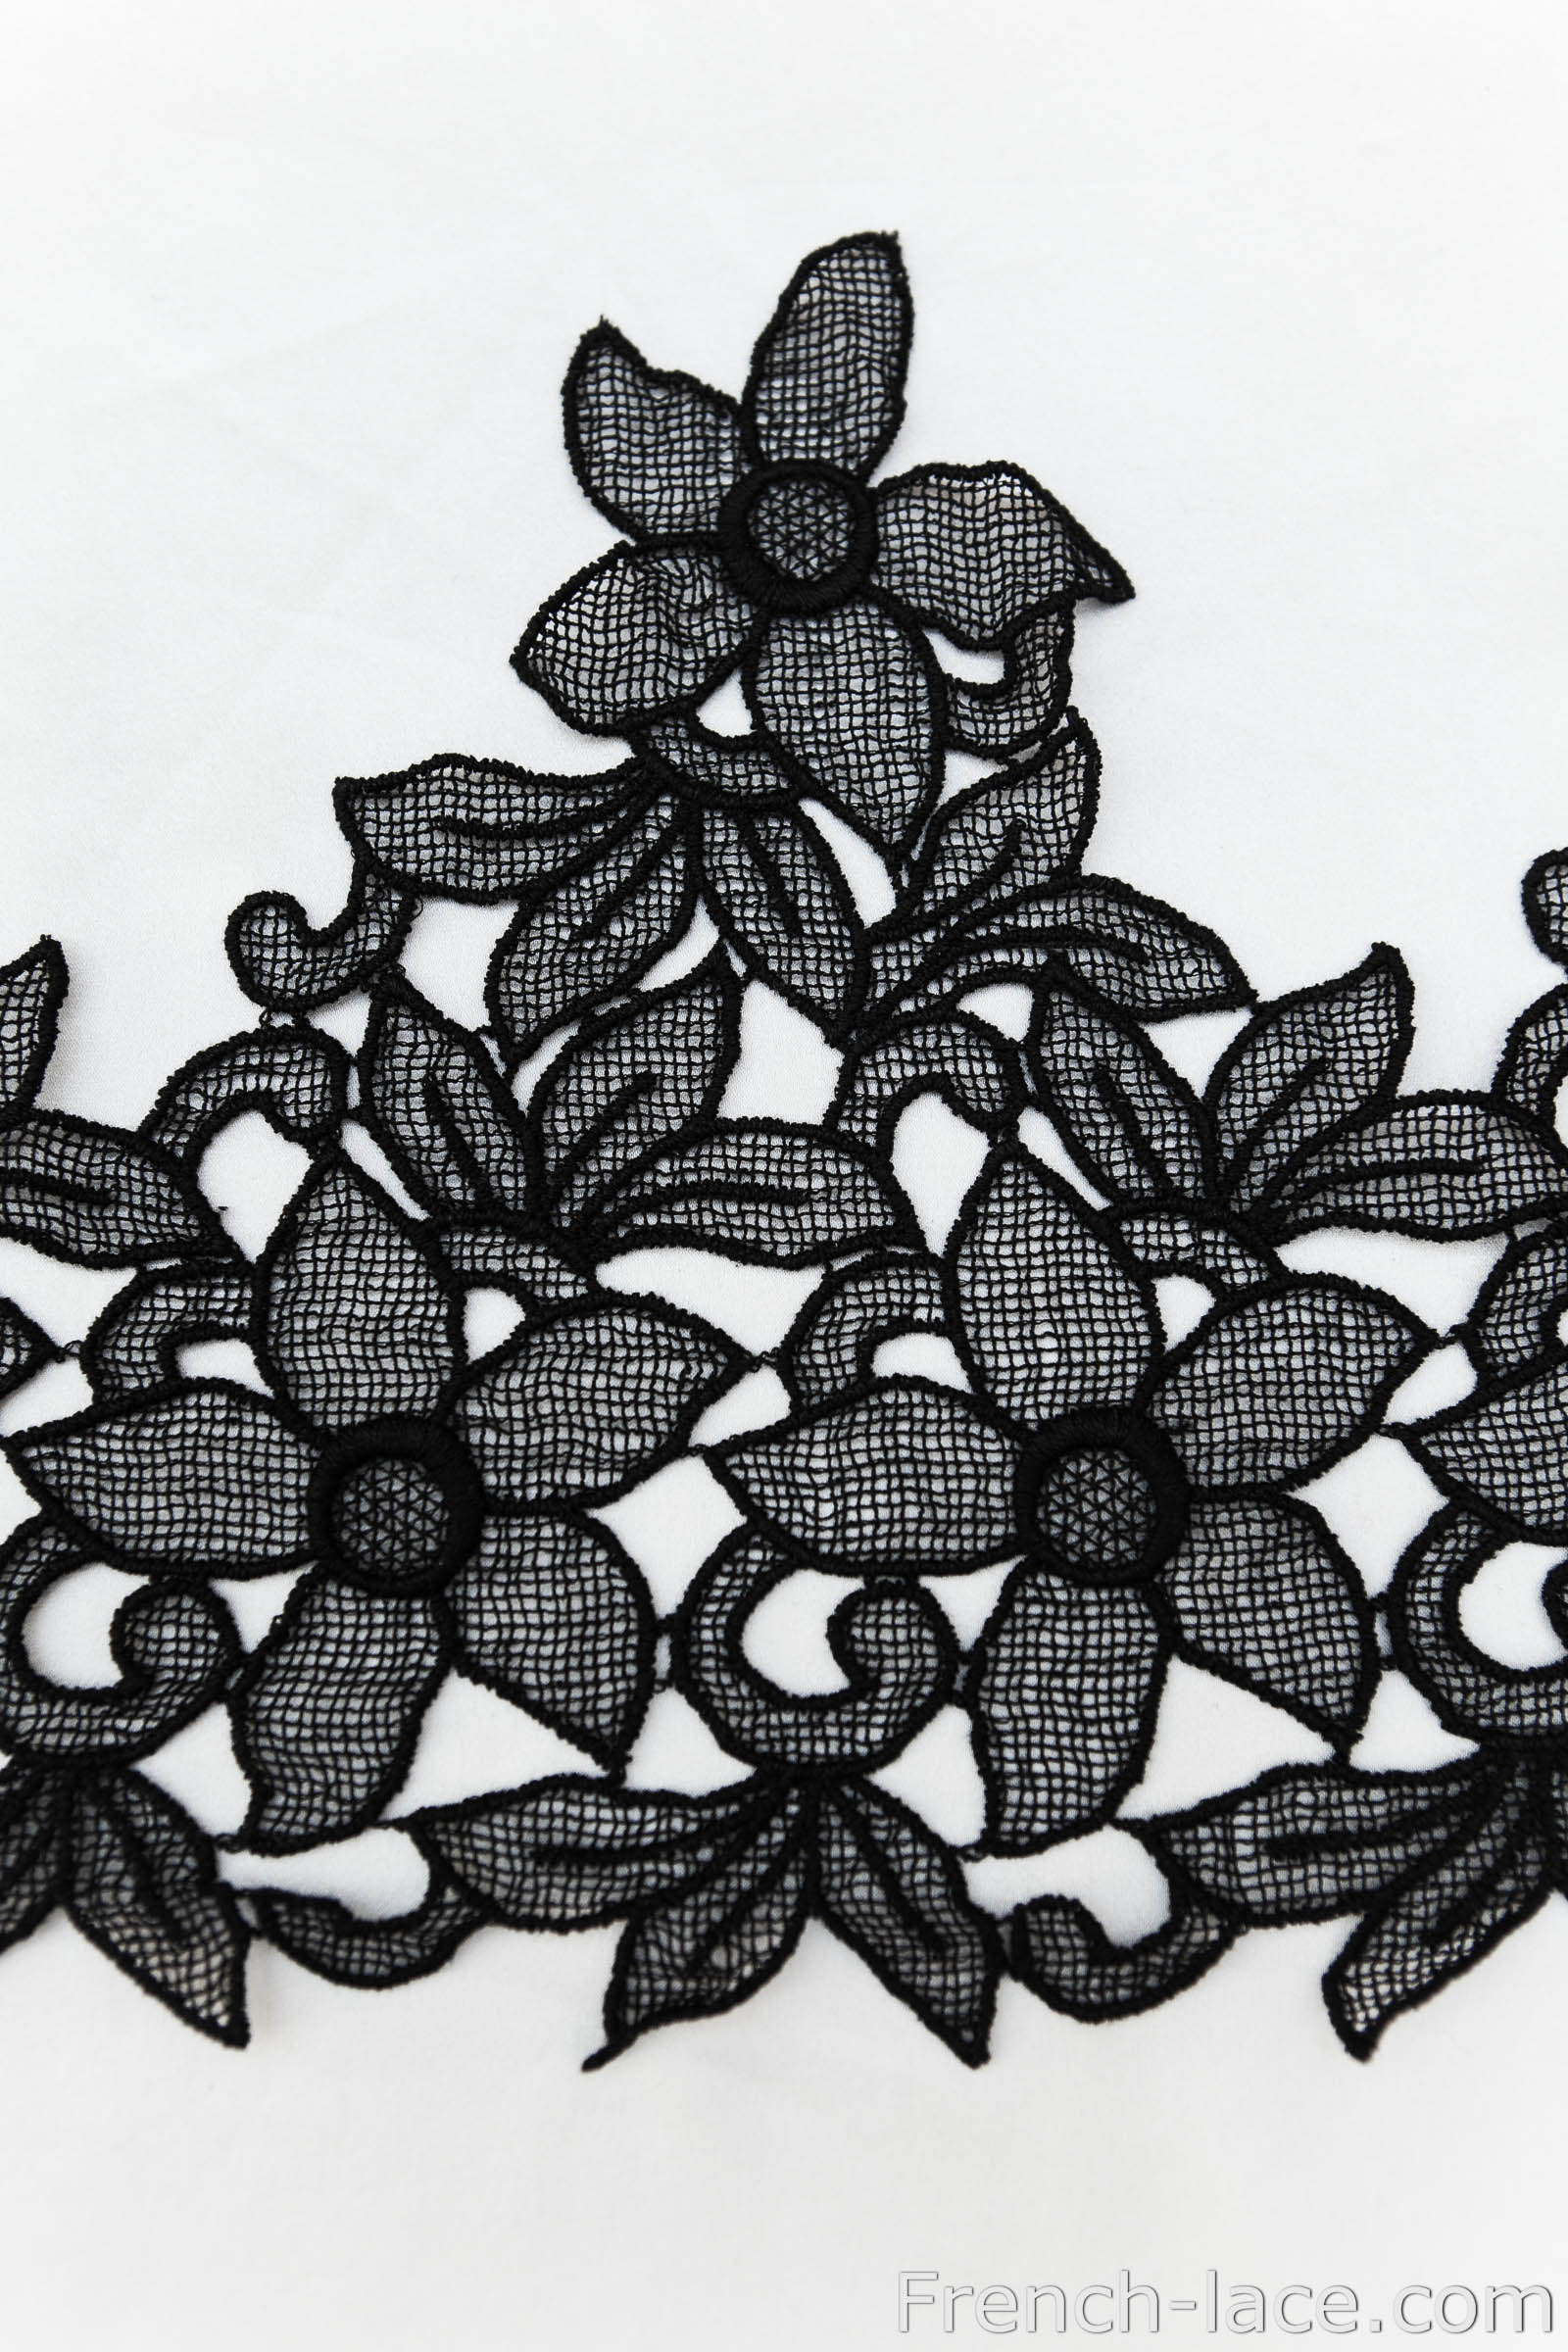 Black macrame lace, can be cut into appliques.